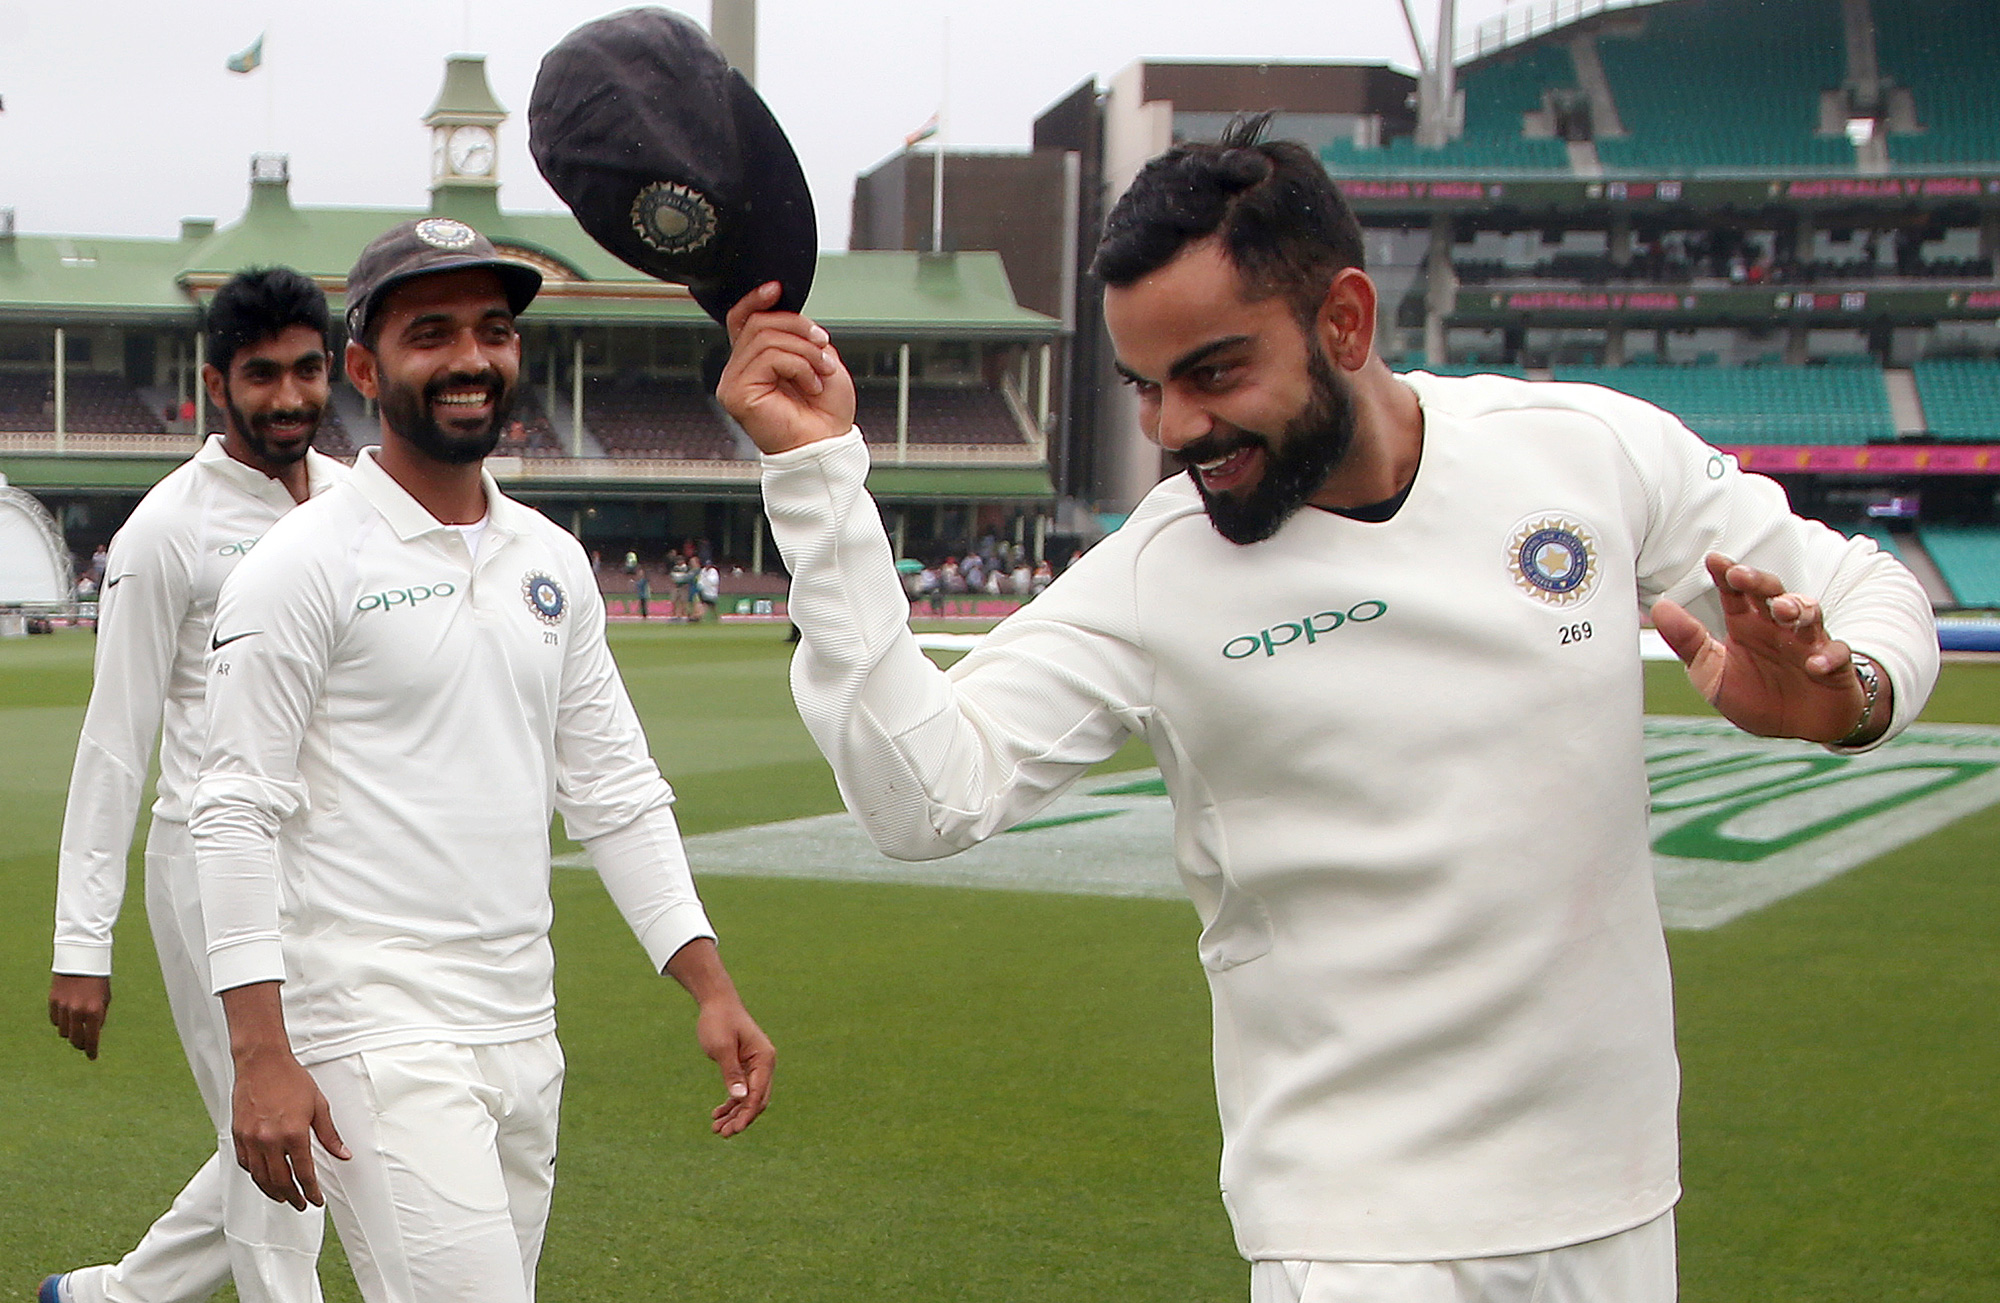 Virat Kohli tips his hat as he celebrates with teammates India's series win over Australia after play was called off on day 5 of their cricket test match in Sydney on Monday, January 7, 2019.